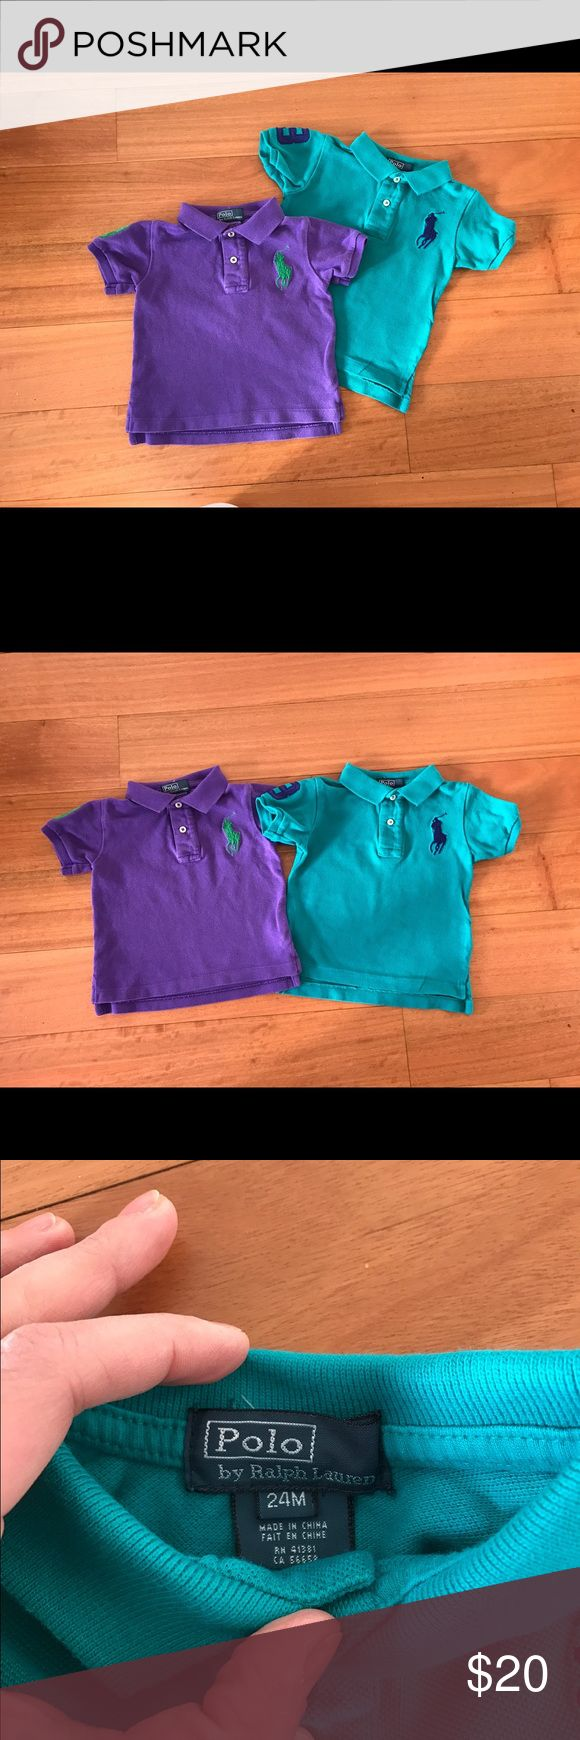 Two baby polo shirts size 24 months. Great condition, no stains. Teal and purple polos. No trades, sorry. Ralph Lauren Shirts & Tops Polos